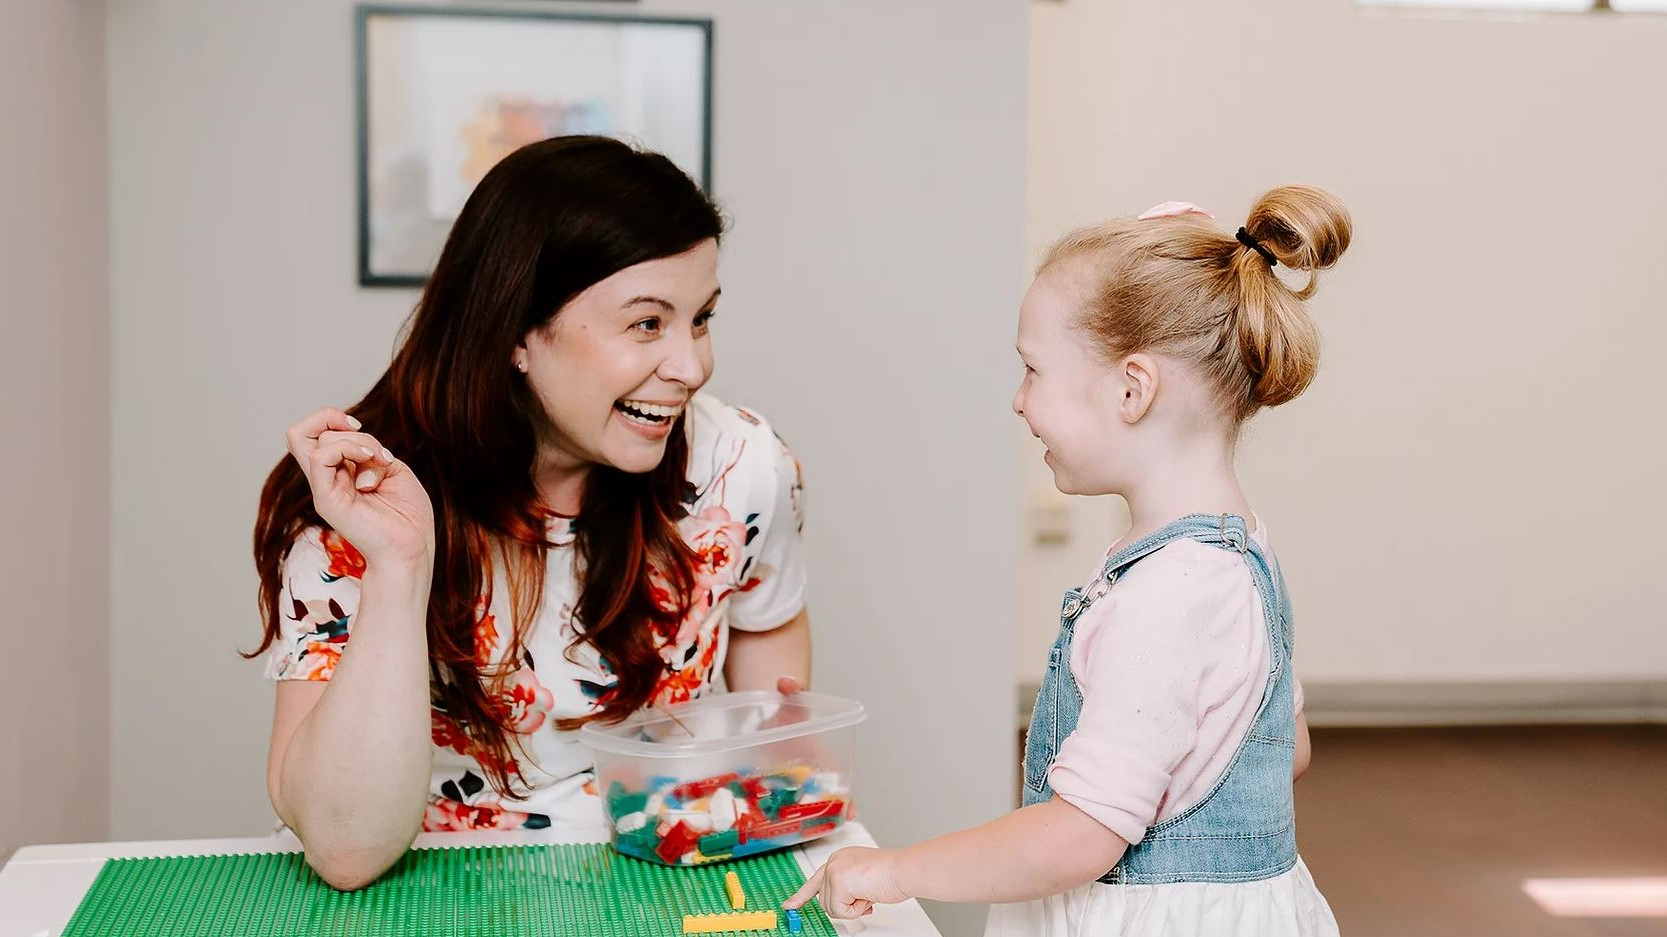 Speech therapy with lego bricks as tools